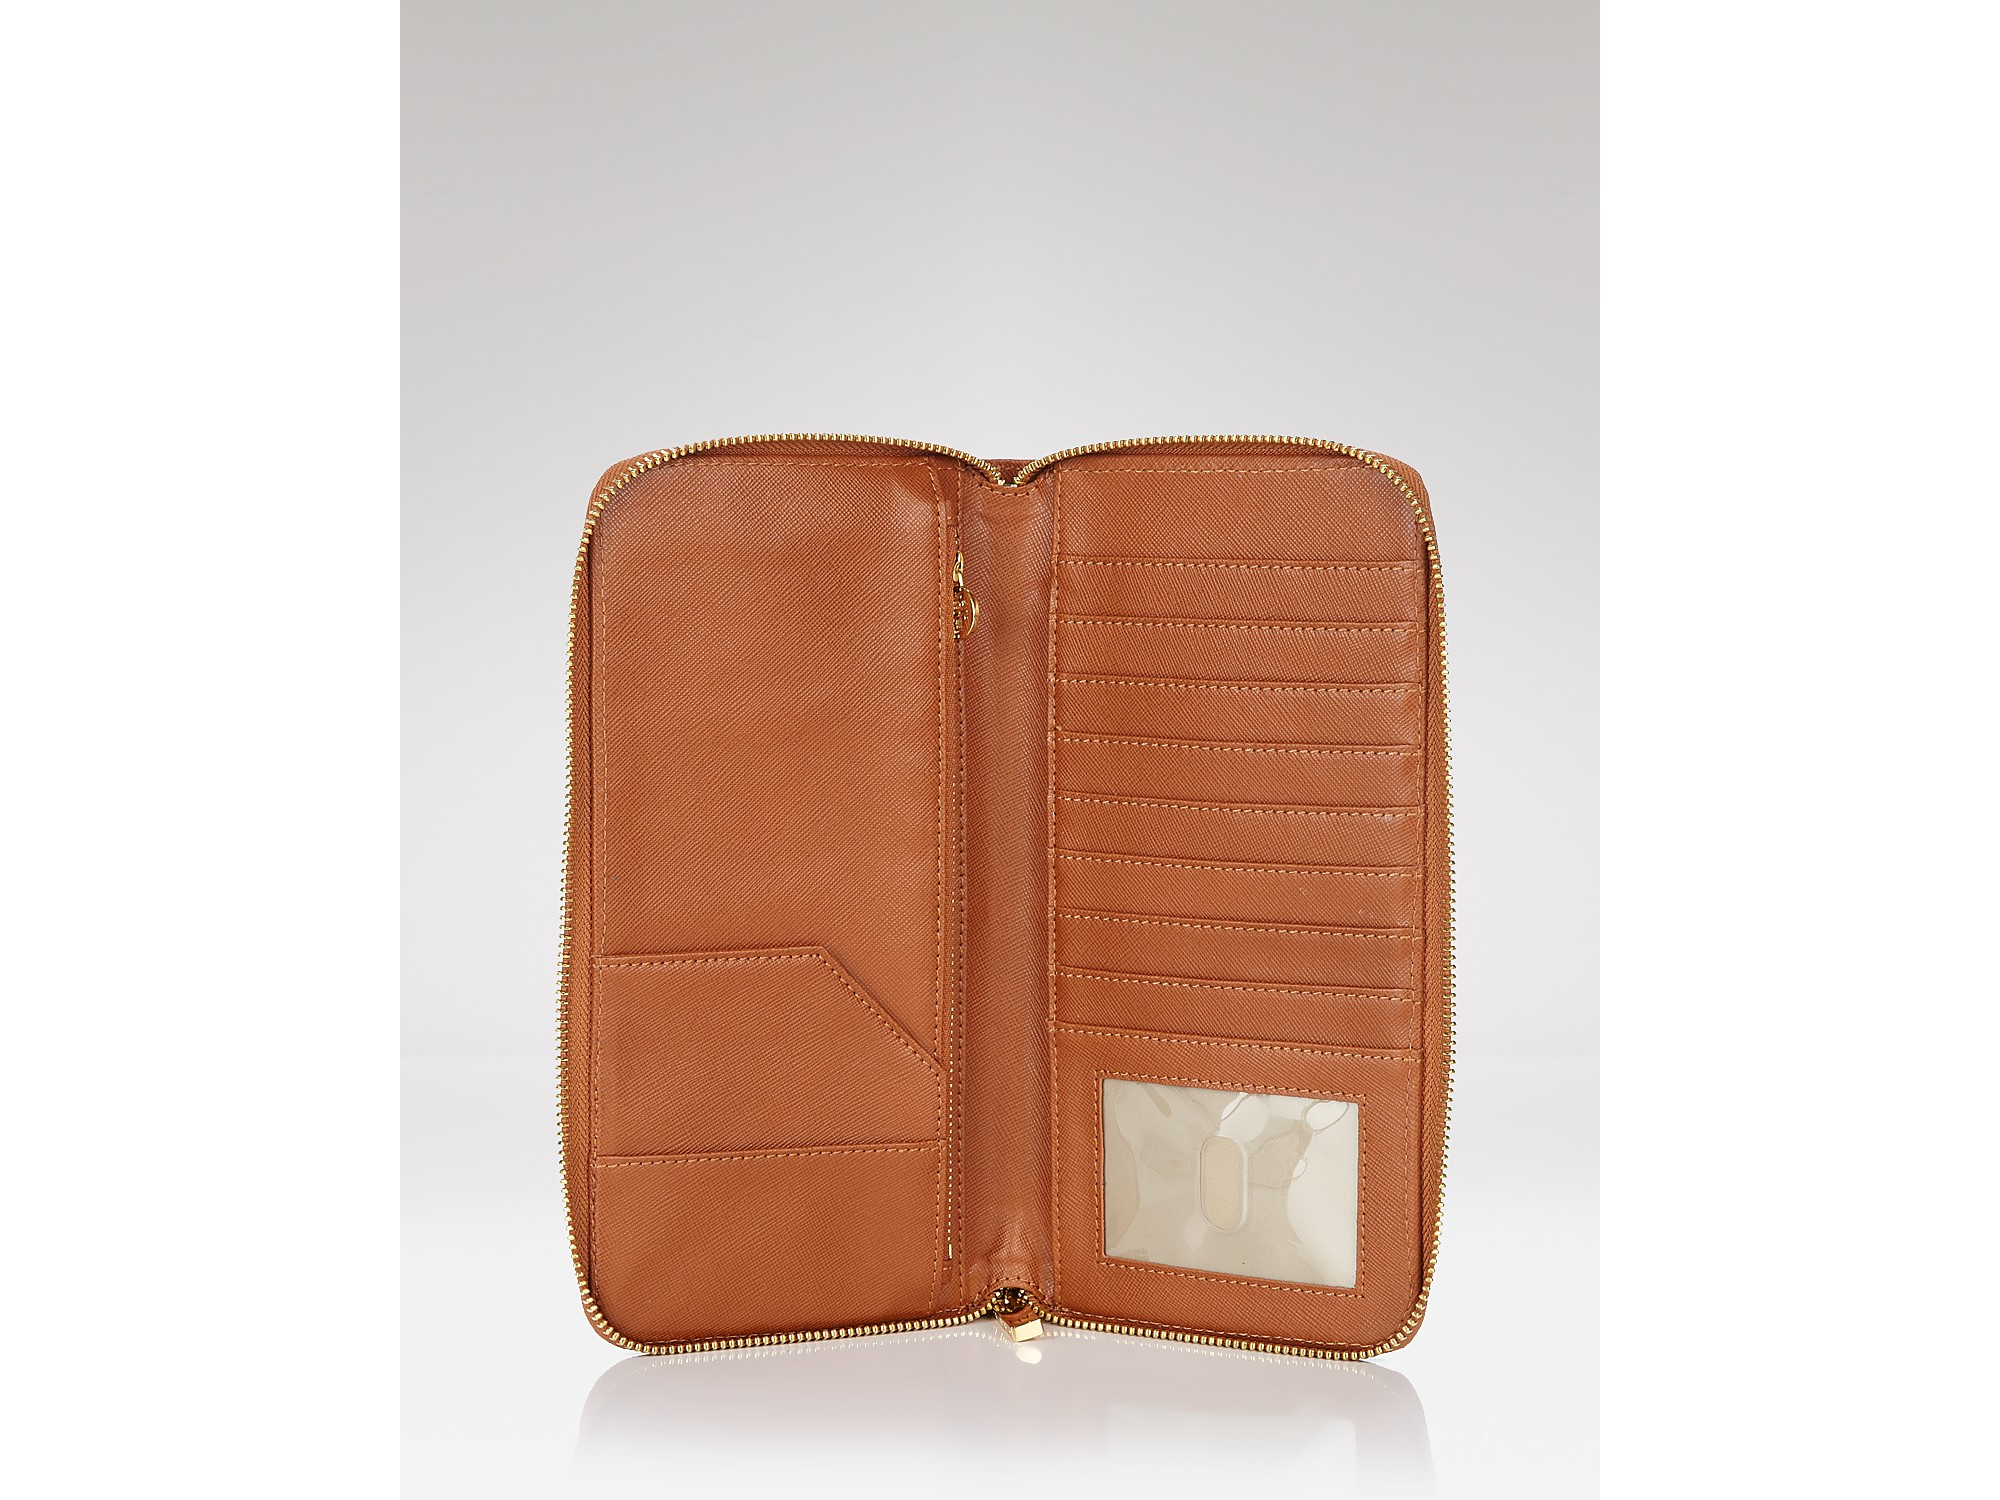 ddb1c1da3131 ... Parker Travel Zip Continental Wallet In Black. Gallery. Lyst Tory Burch  Robinson Travel Wallet In Brown